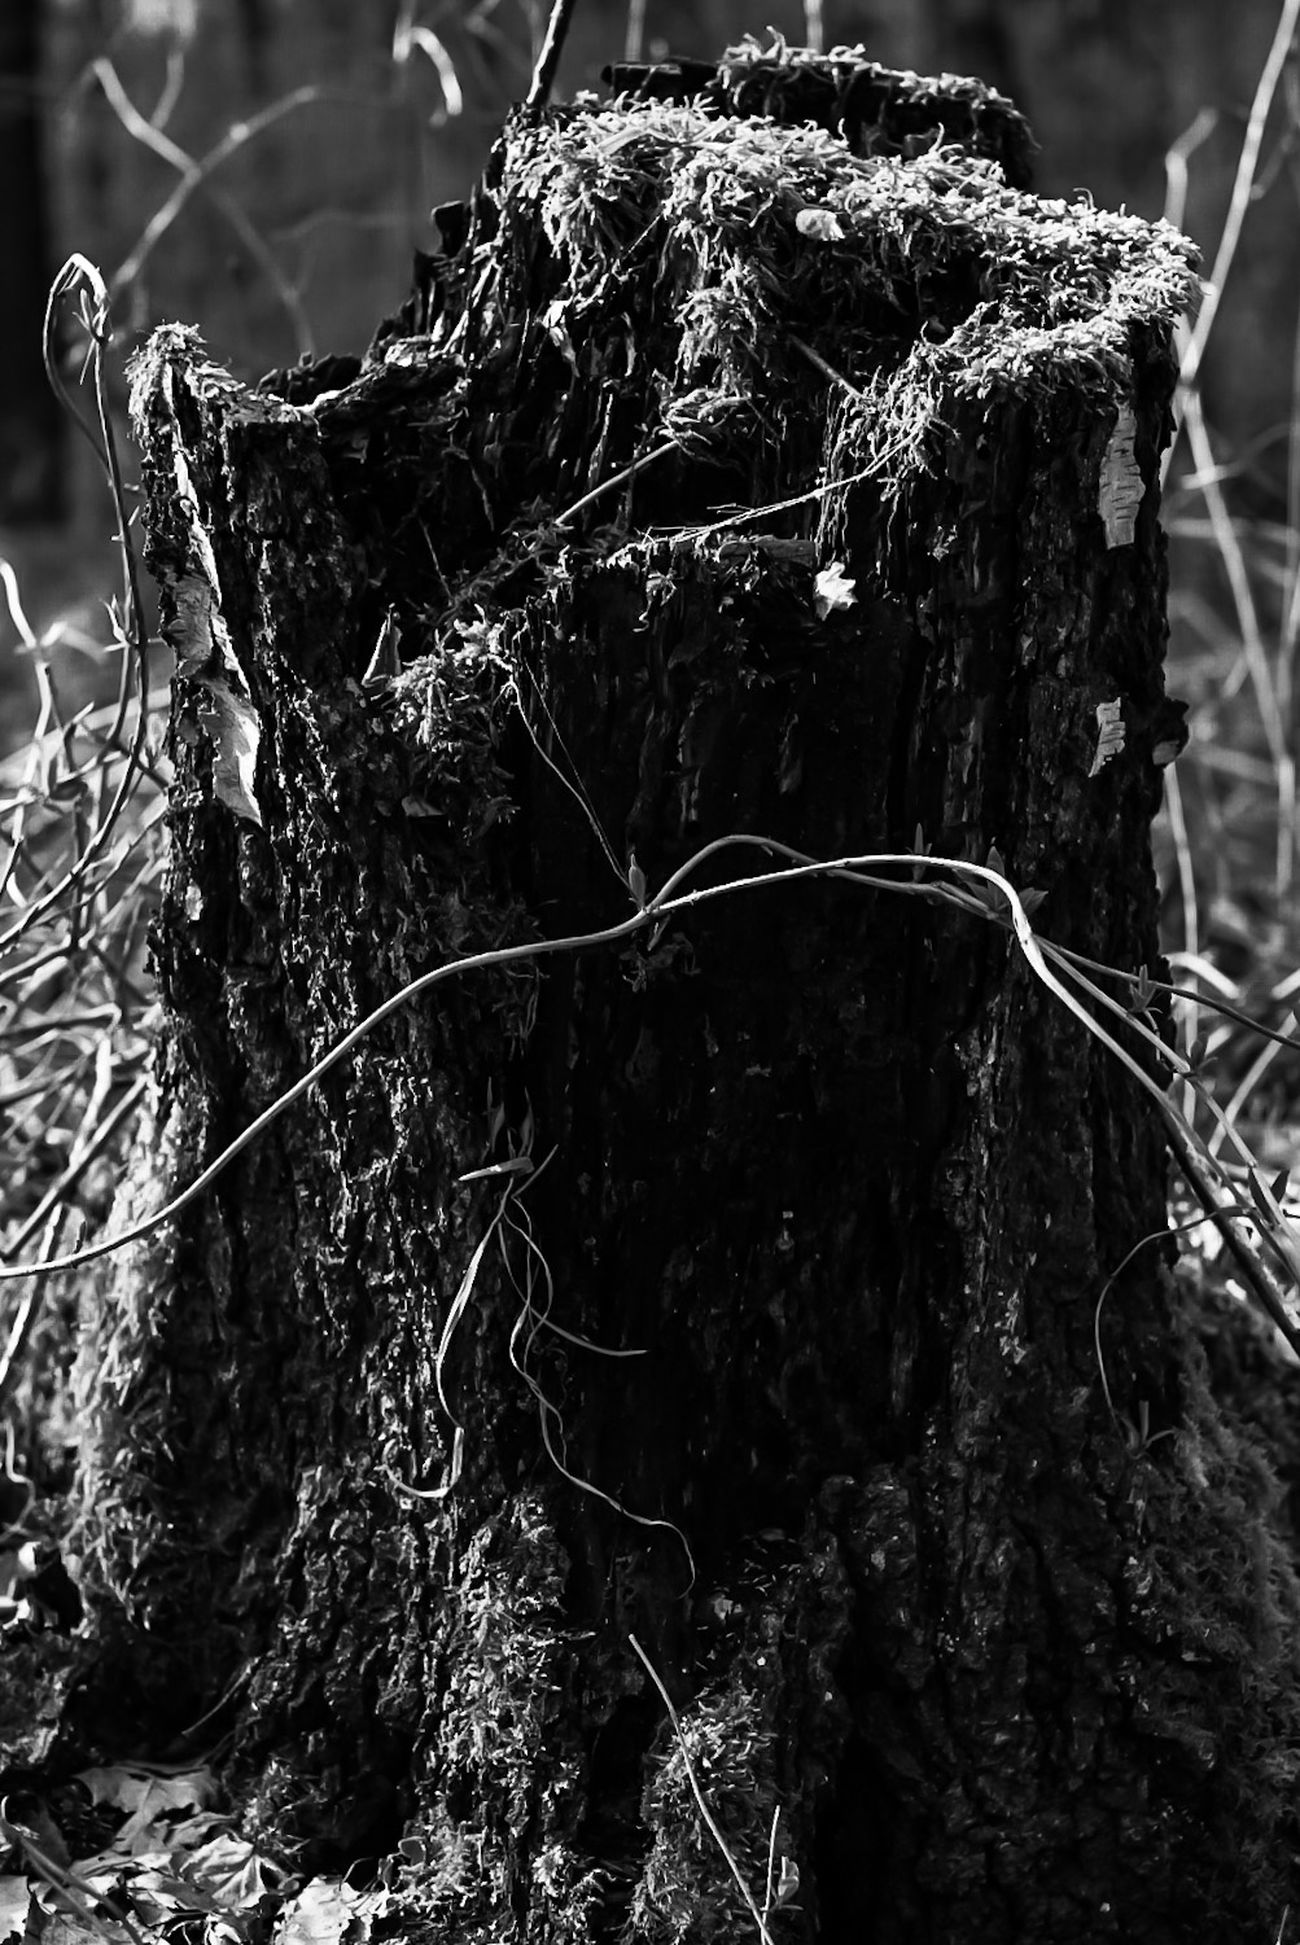 Tree No People Nature Outdoors Day Branch Sky Close-up Beauty In Nature Pics Waldrand Wald EyeEmNewHere Fotografie Forest Beauty In Nature Photography Tree Nature Pictures Tree Stump Tree Trunk Follower Bnw Photography Bnw_shot